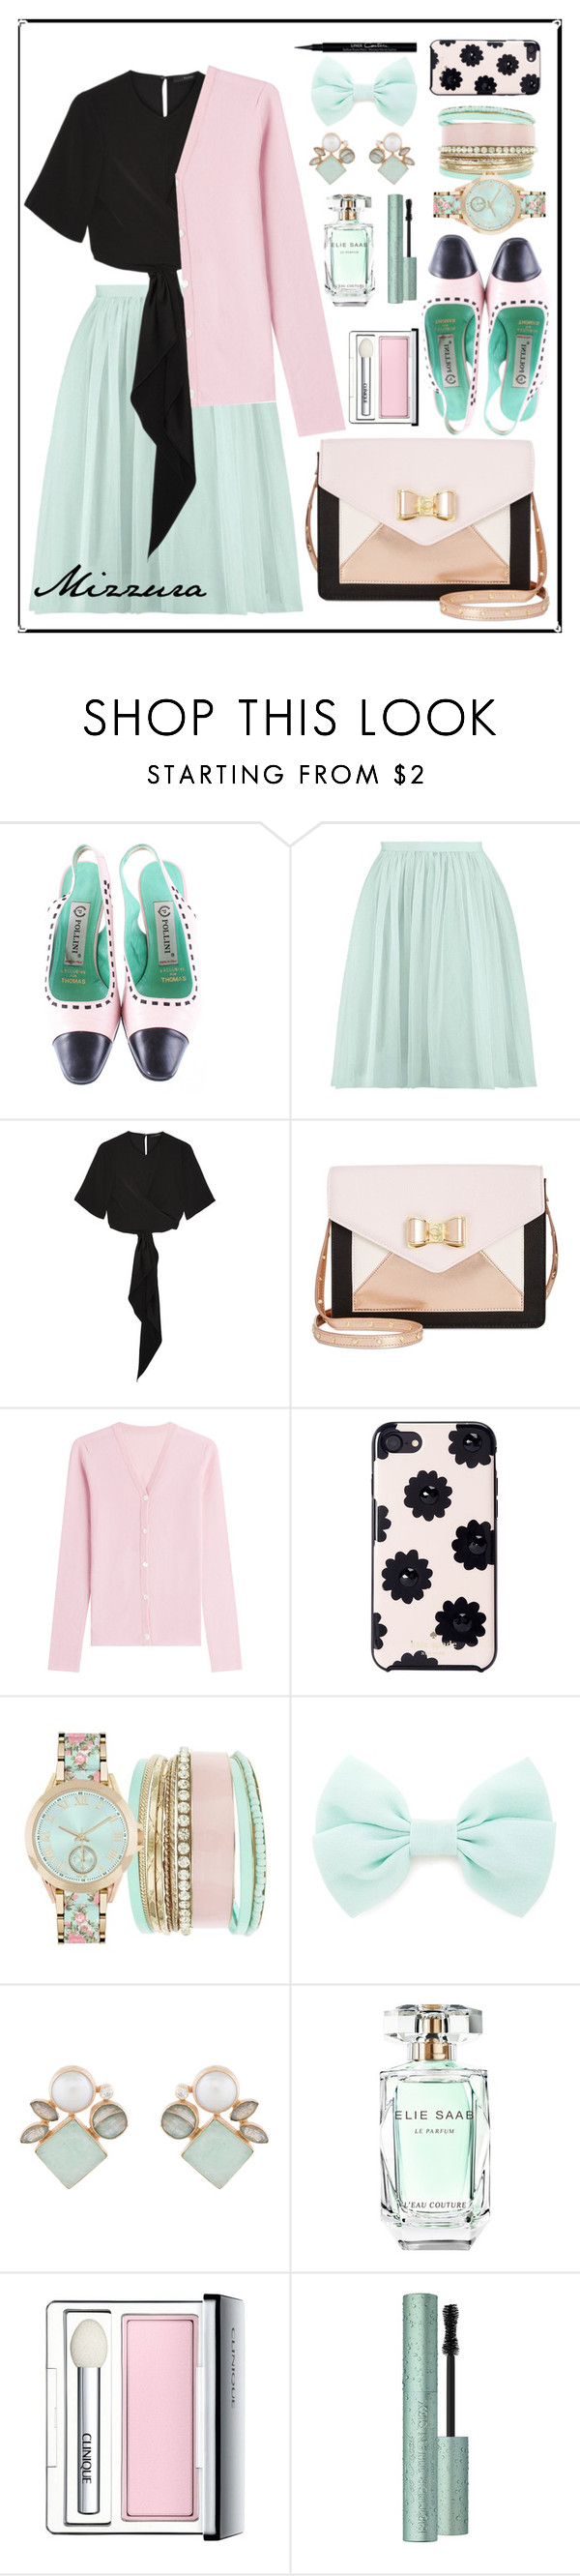 """Untitled #64"" by mizzura ❤ liked on Polyvore featuring Pollini, Boohoo, E L L E R Y, Betsey Johnson, Lucien Pellat-Finet, Kate Spade, Jessica Carlyle, Forever 21, Atelier Mon and Elie Saab"